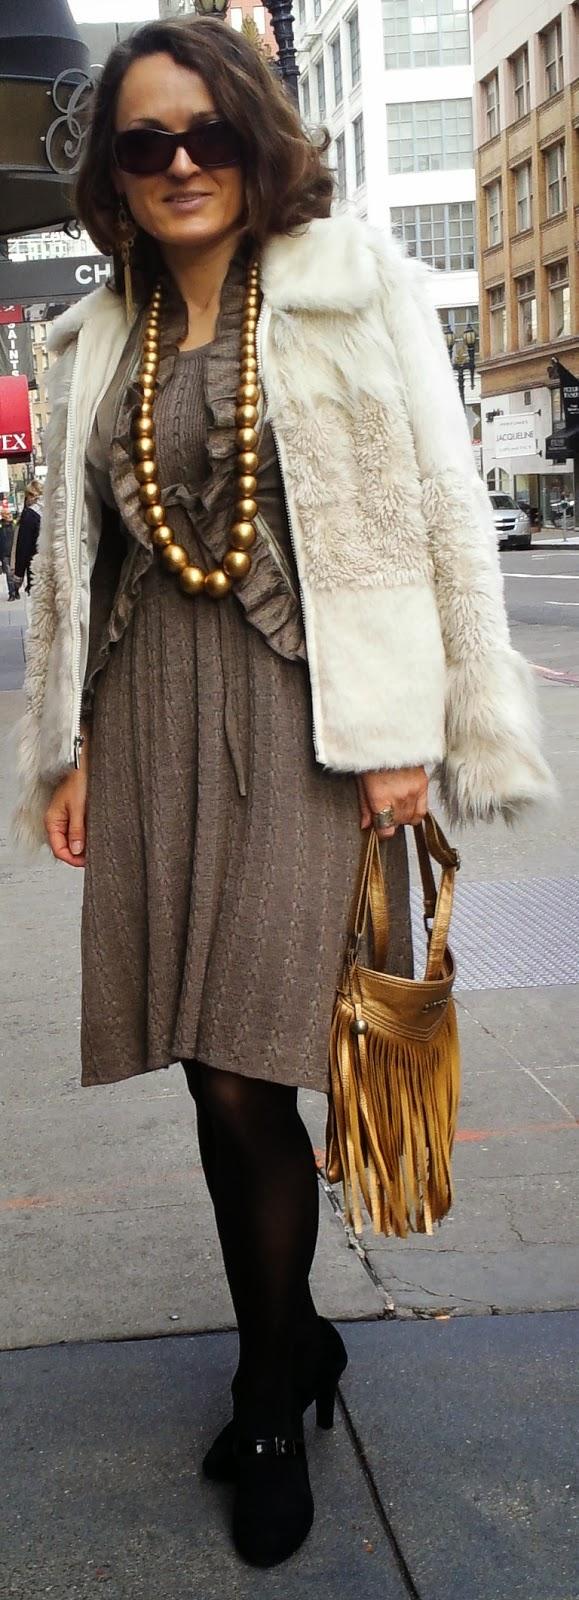 blog.oanasinga.com-outfit-ideas-personal-style-photos-faux-fur-jacket-over-shoulders-gold-accessories-fringed-bag